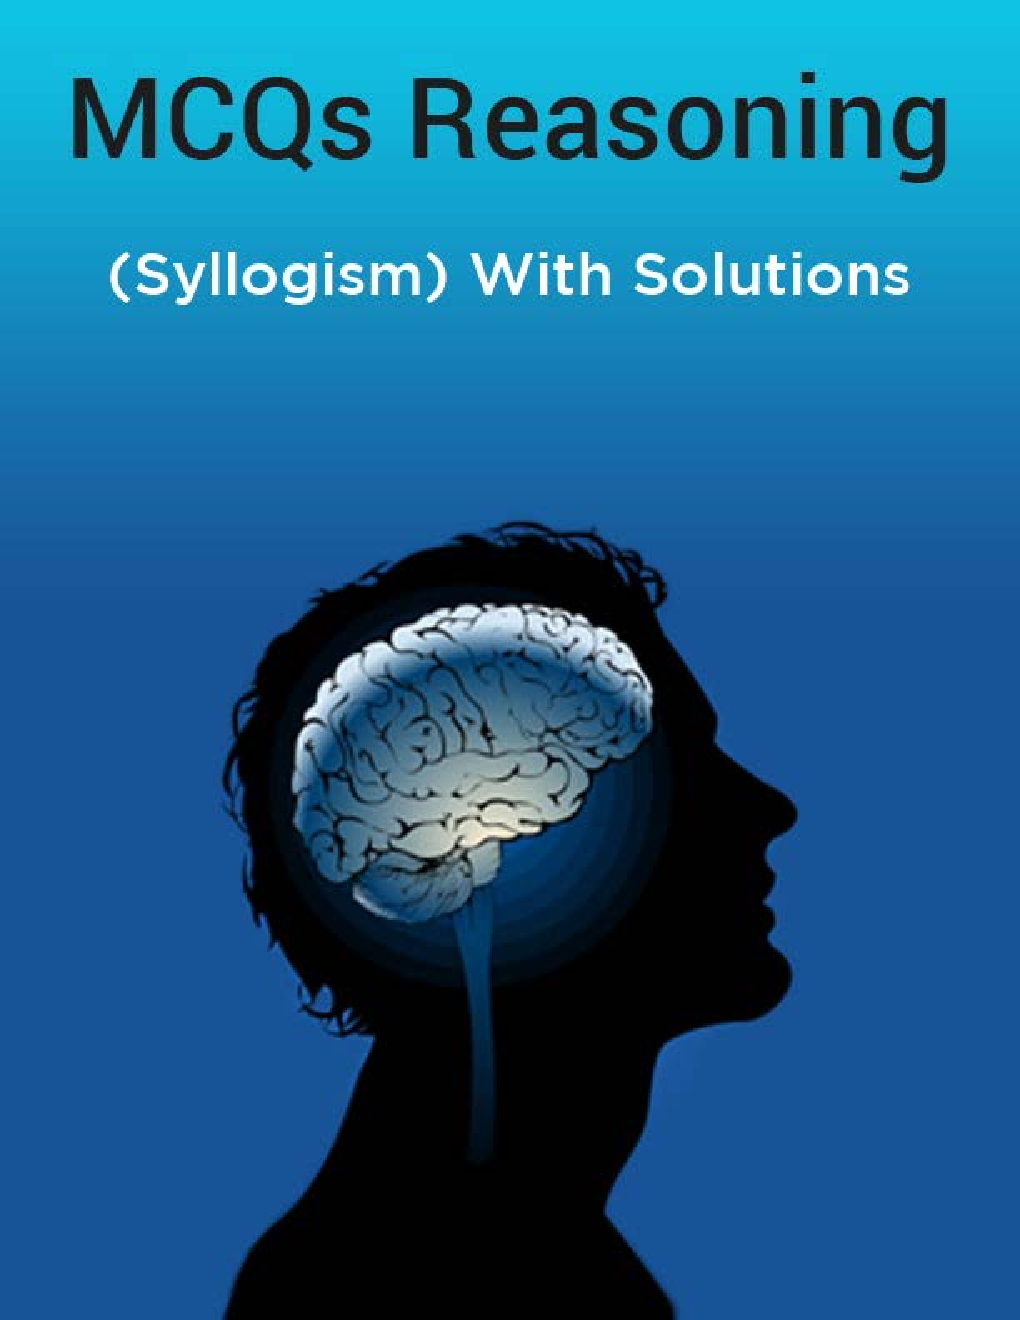 MCQs Reasoning (Syllogism) With Solutions - Page 1